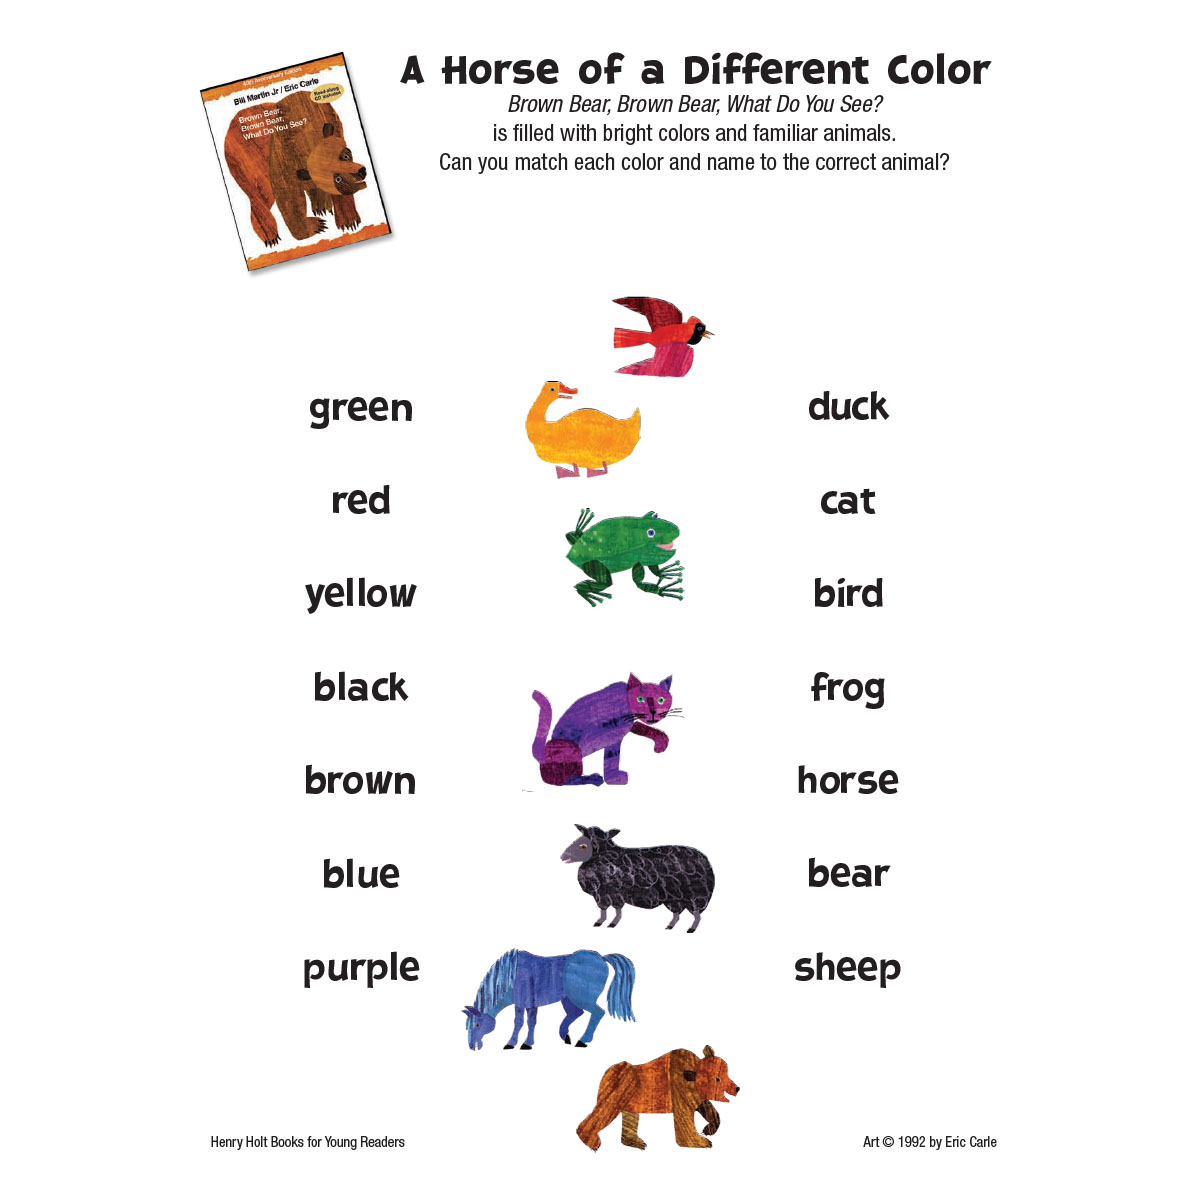 Brown Bear: Colors